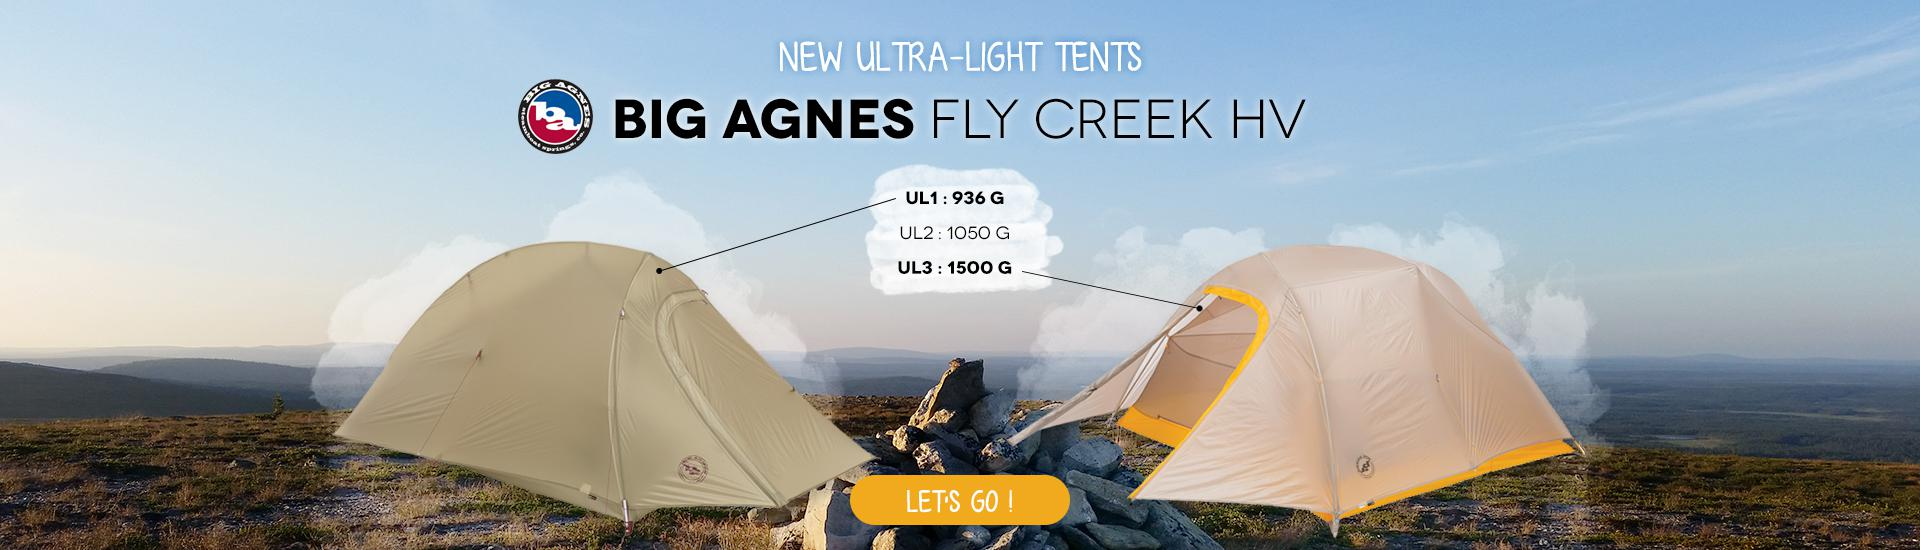 Big Agnes Fly Creek HV UL